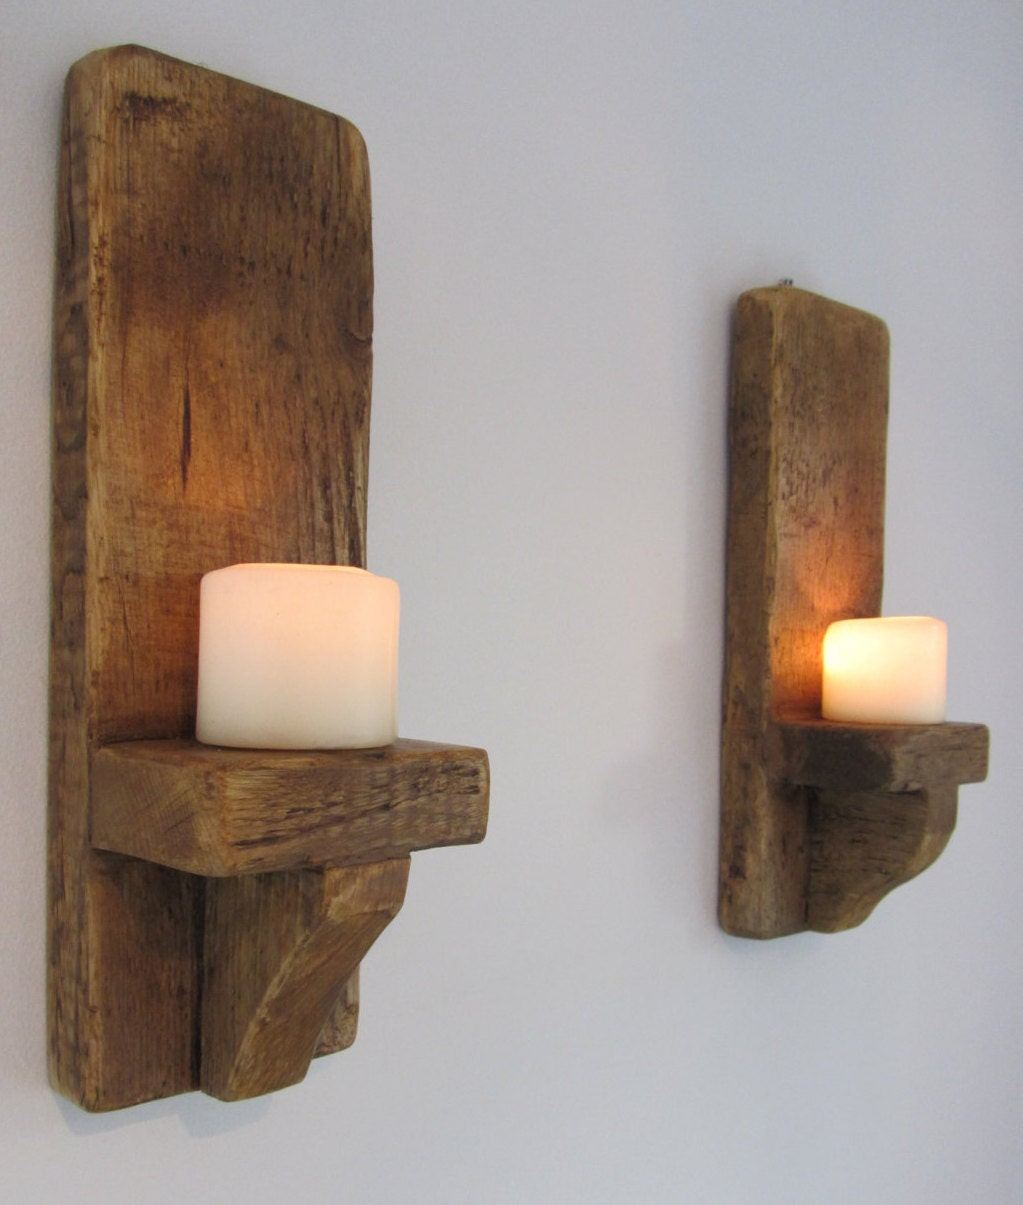 Pair of rustic reclaimed plank wood chunky wall sconce candle